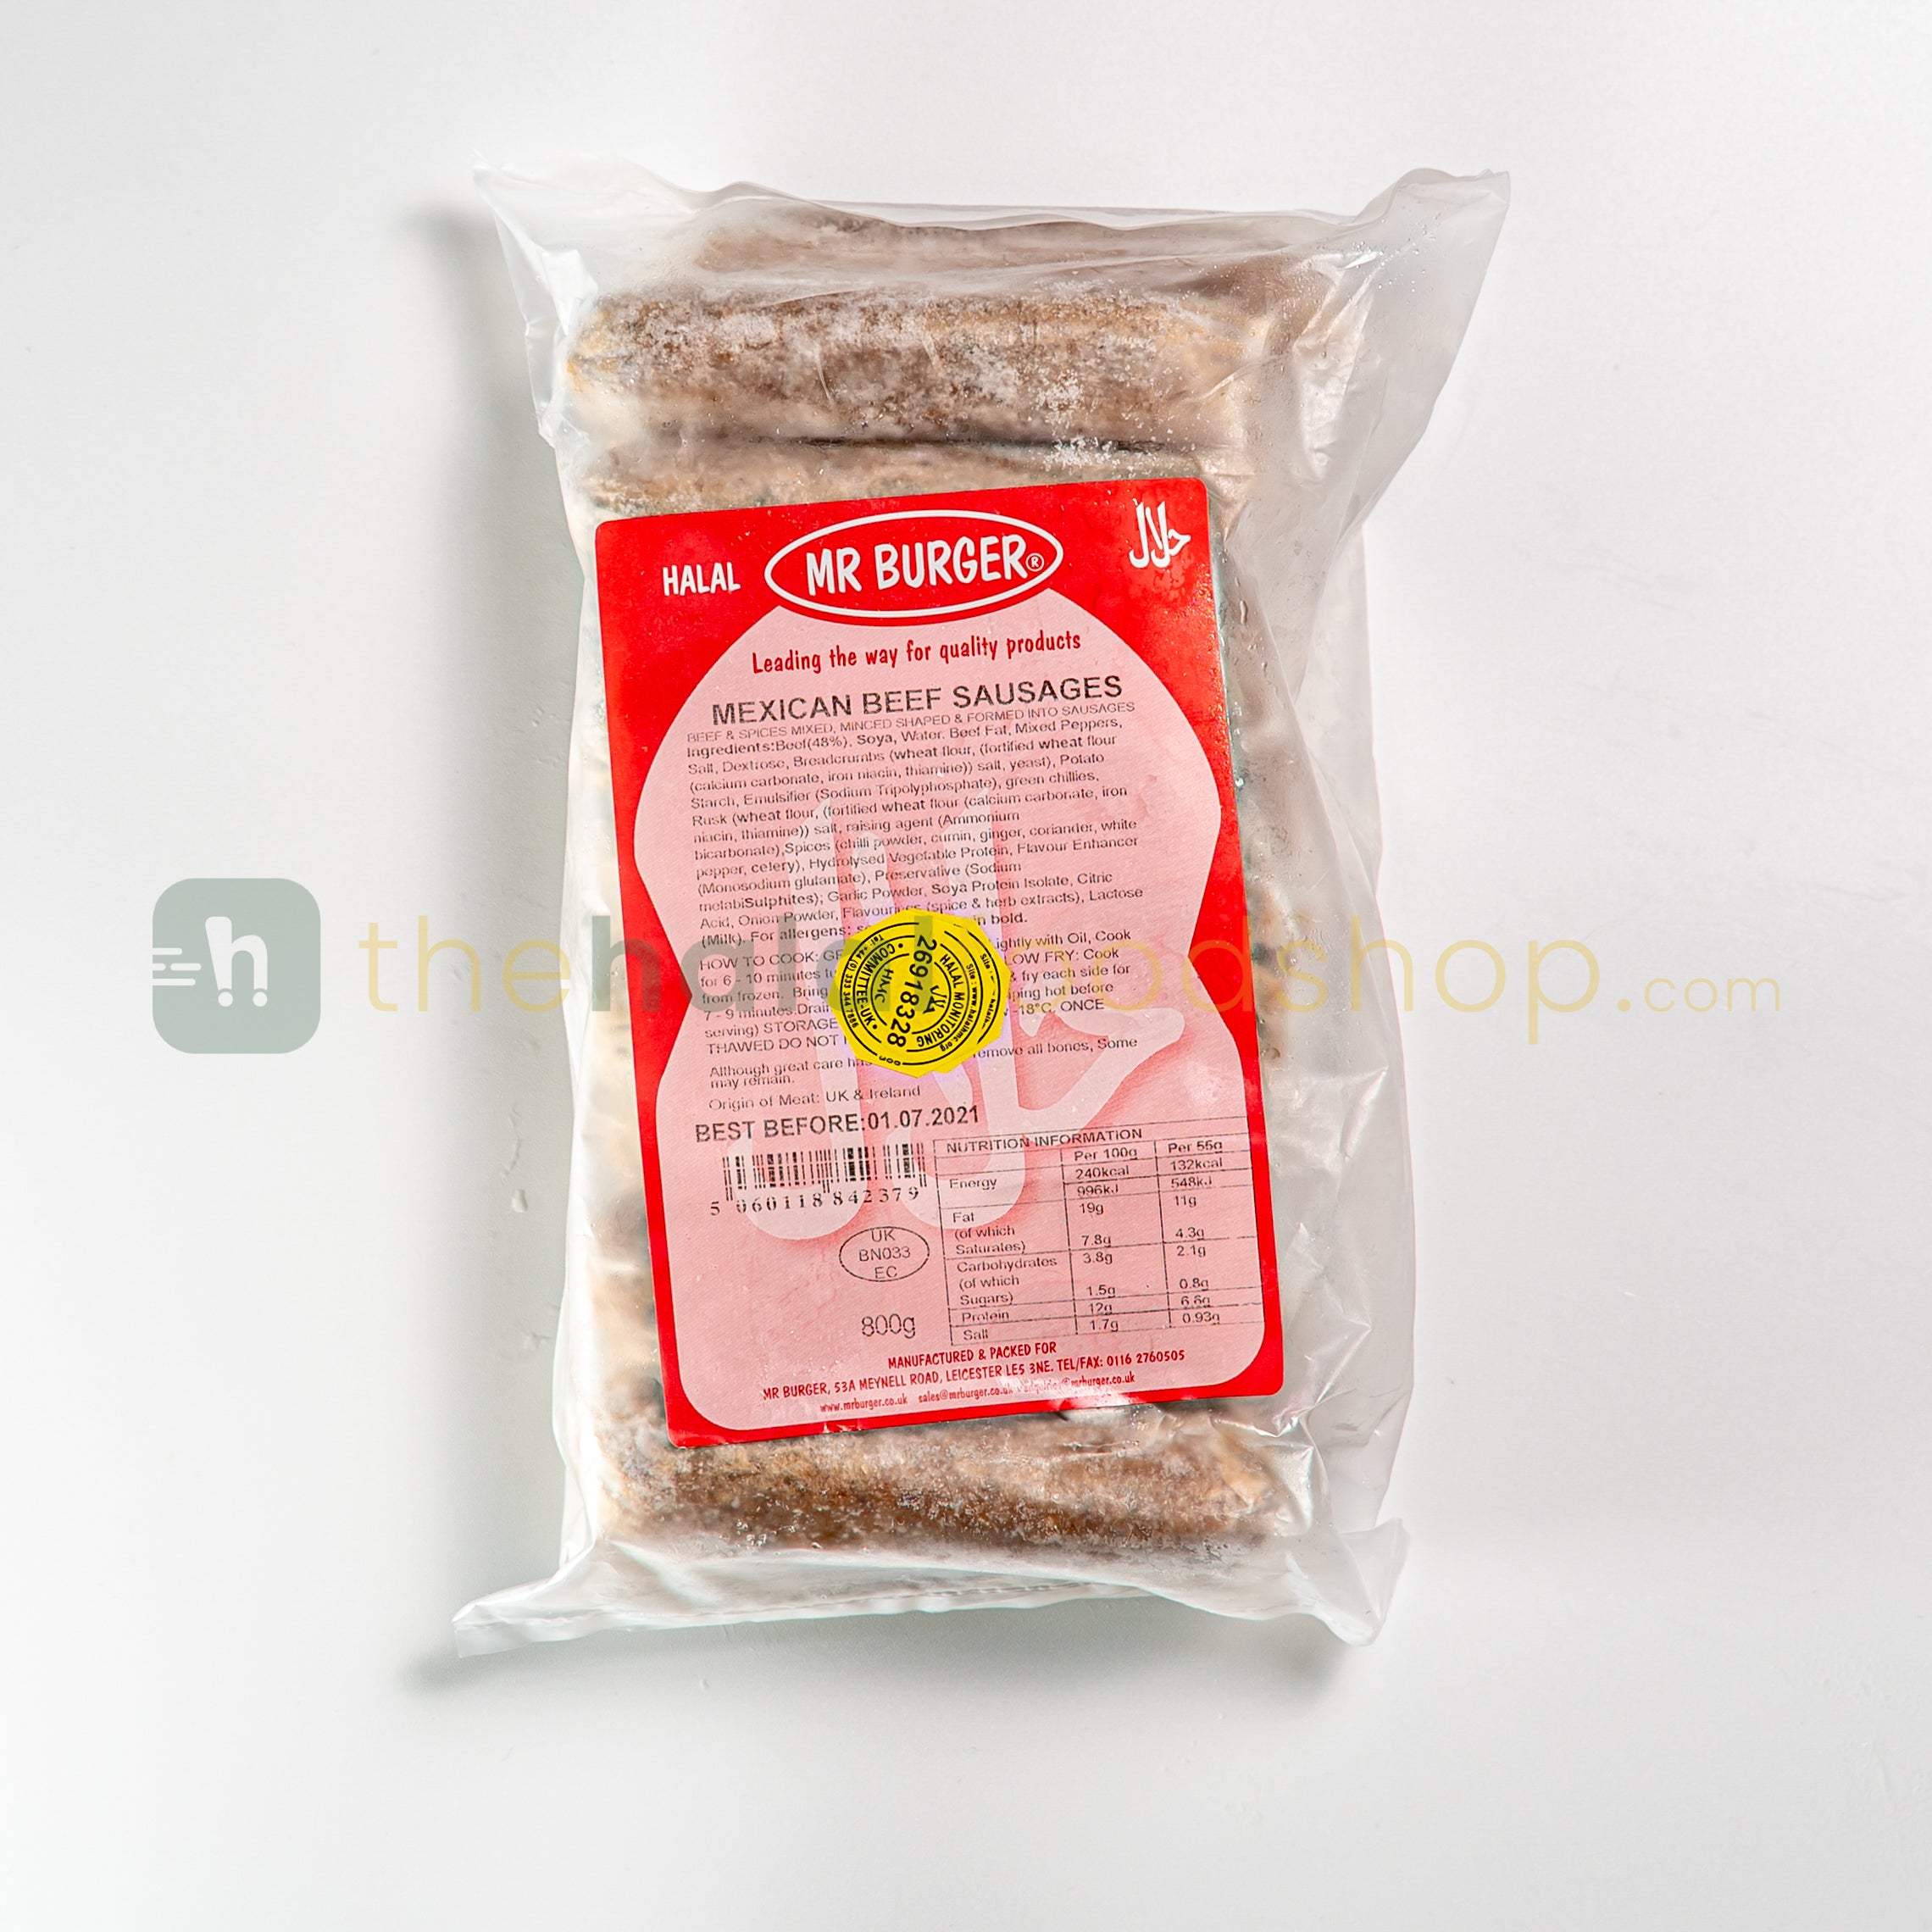 Mr Burger Mexican Beef Sausages (800g)